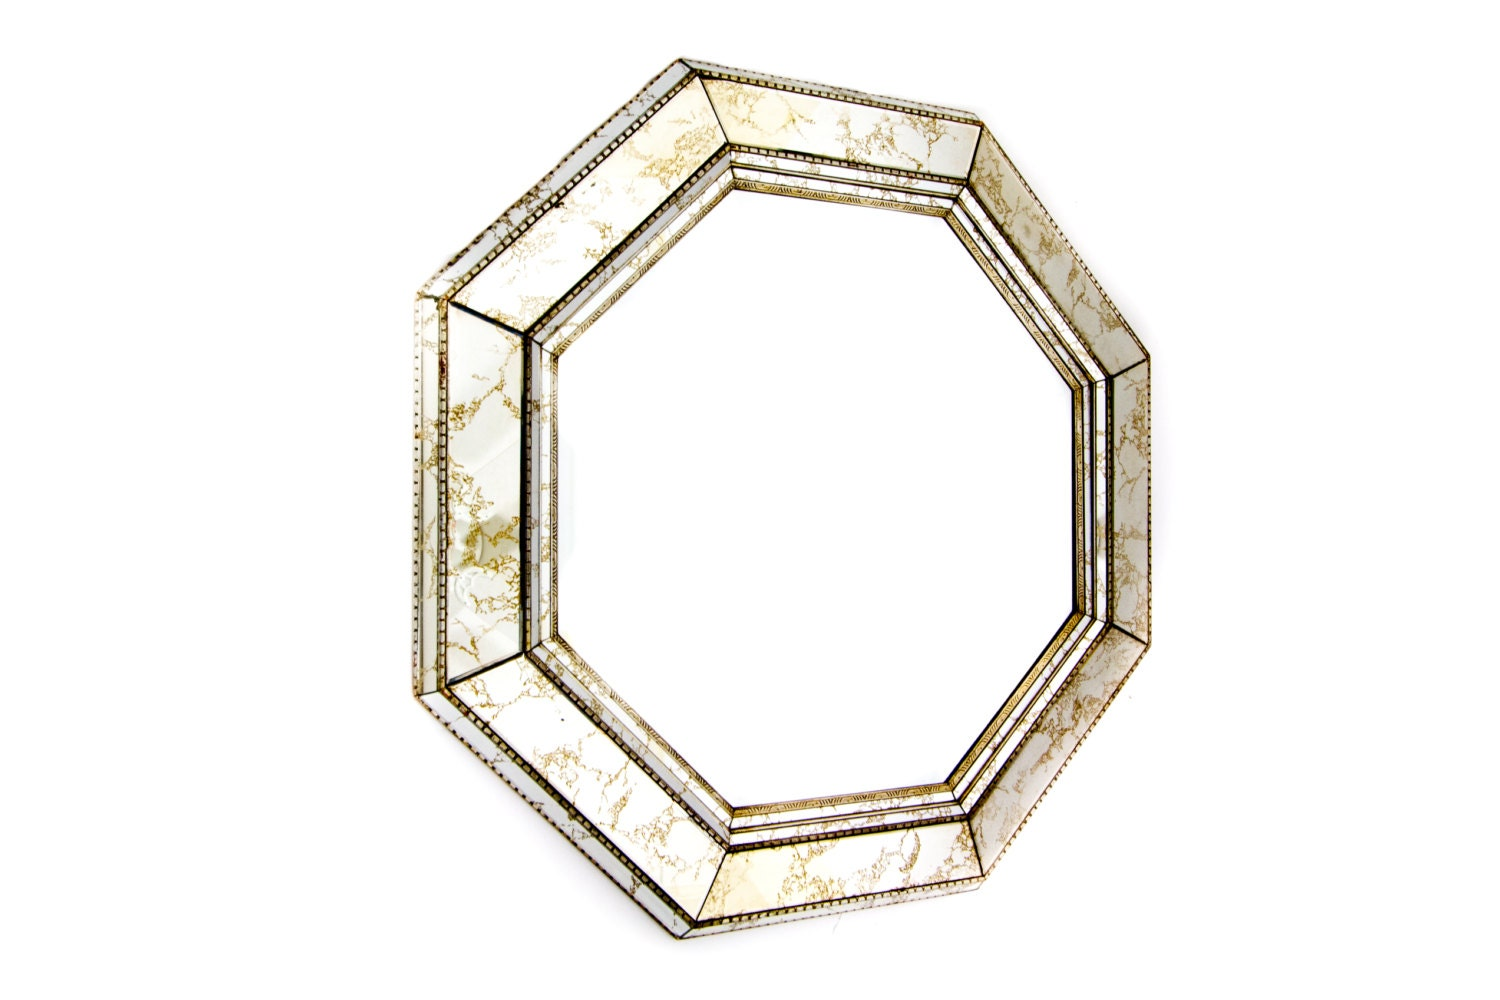 Octagonal wall mirror gold vein beveled glass large for Octagon beveled mirror